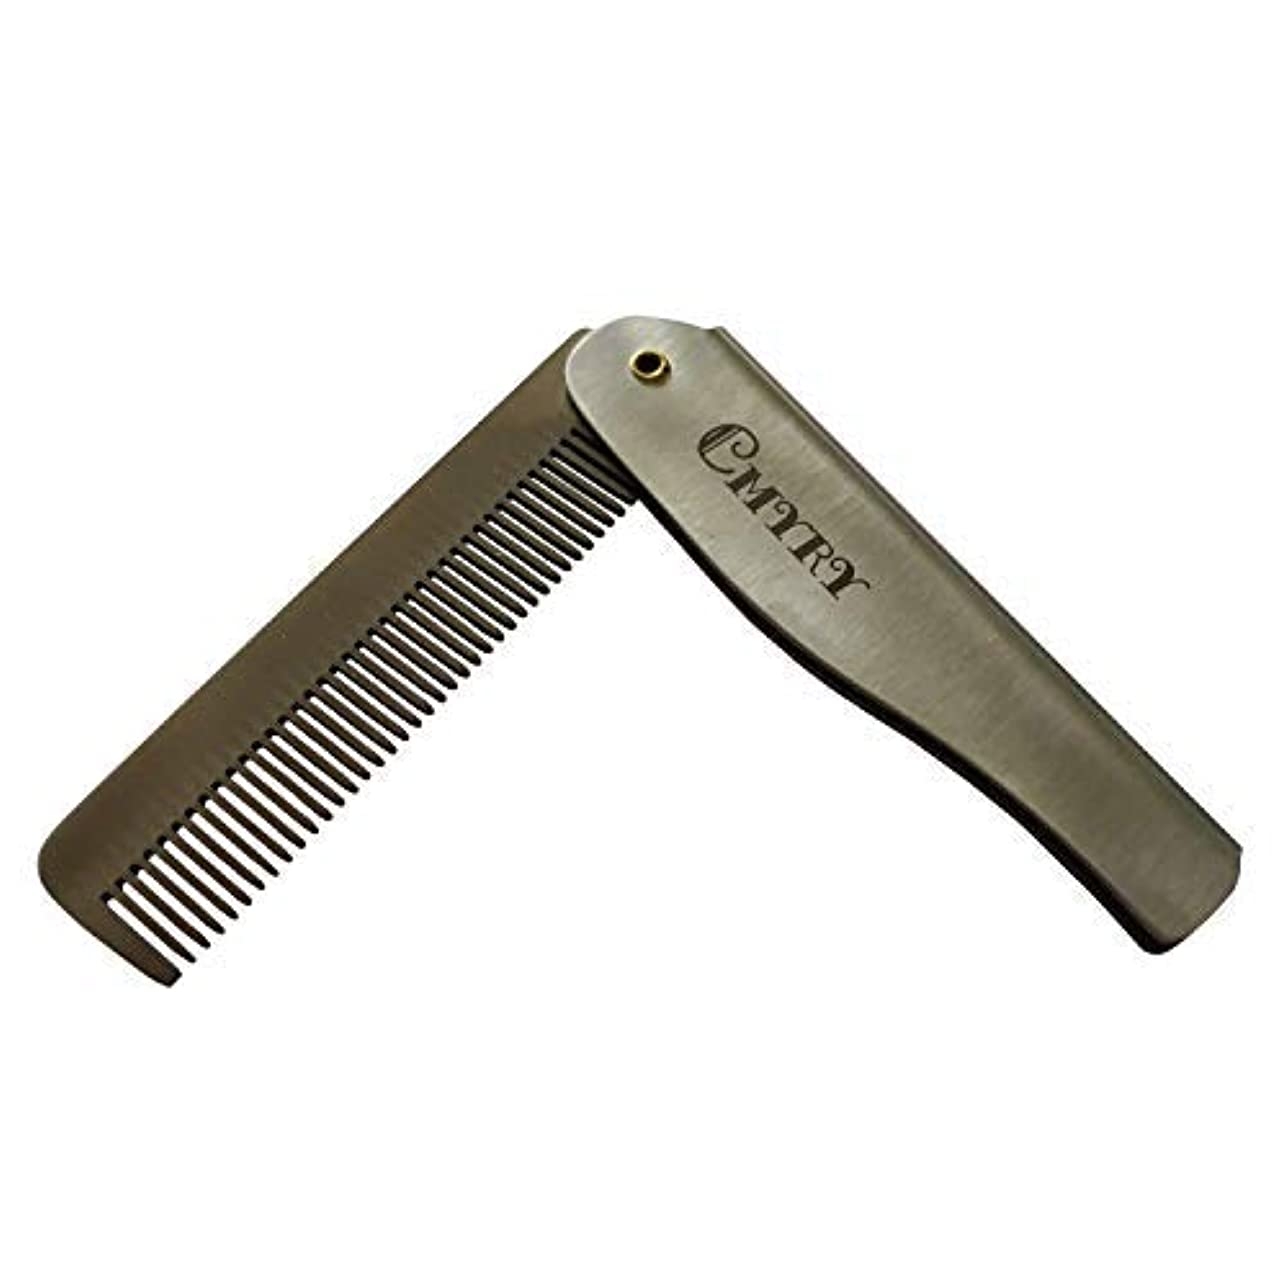 トラック努力するスラムFolding Beard Hair Pocket Mustaches Pouch Comb Durable Anti-Static Comb for Men [並行輸入品]